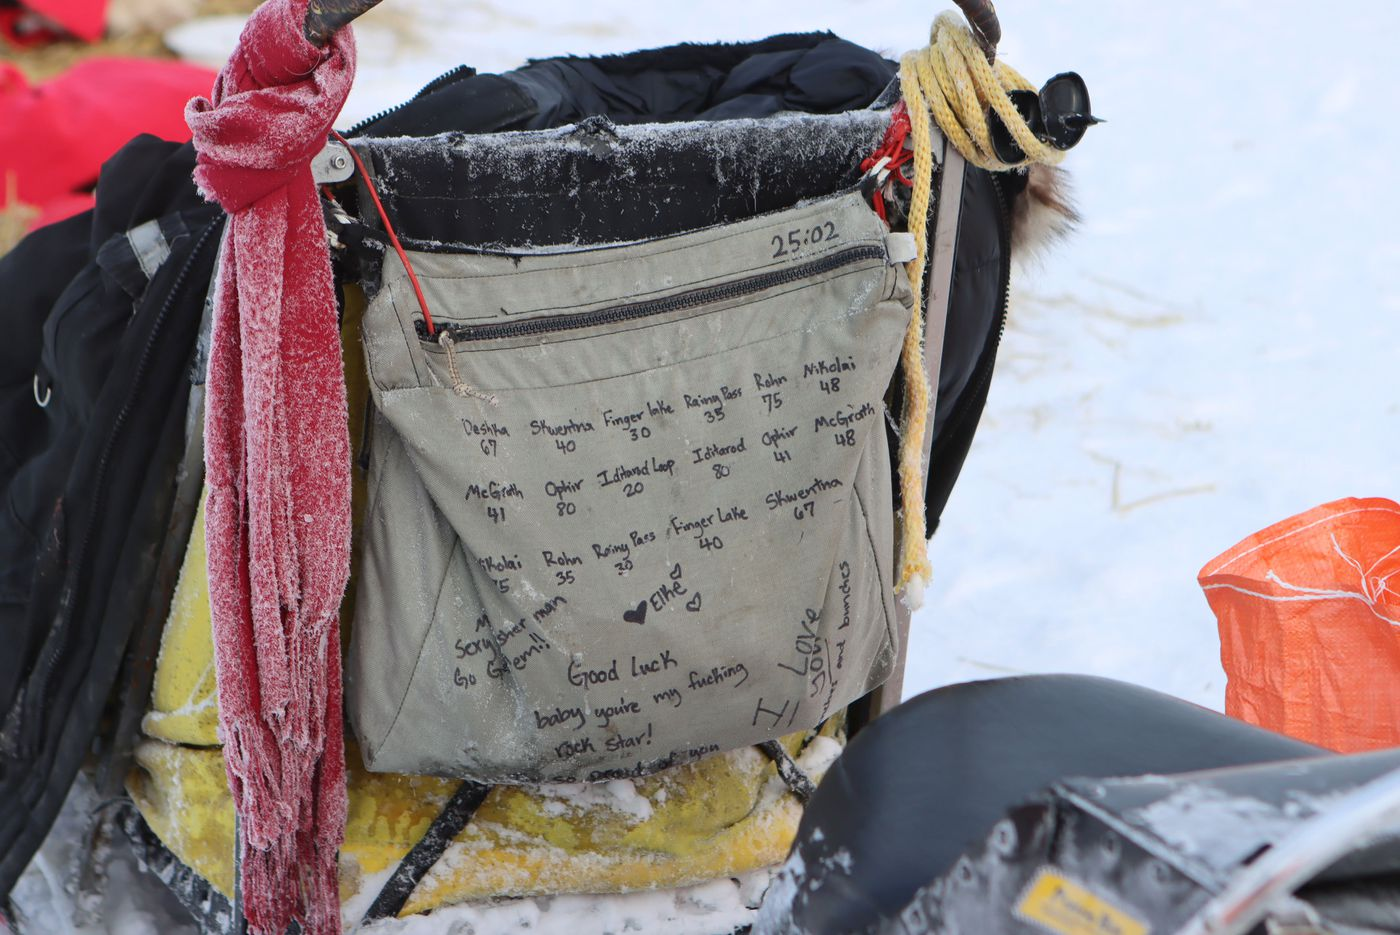 Matt Hall's sled bag is covered with writing, including encouraging notes from family and the mileage between checkpoints along the route. Photographed in McGrath on Wednesday March 10th. (Zachariah Hughes/for ADN)